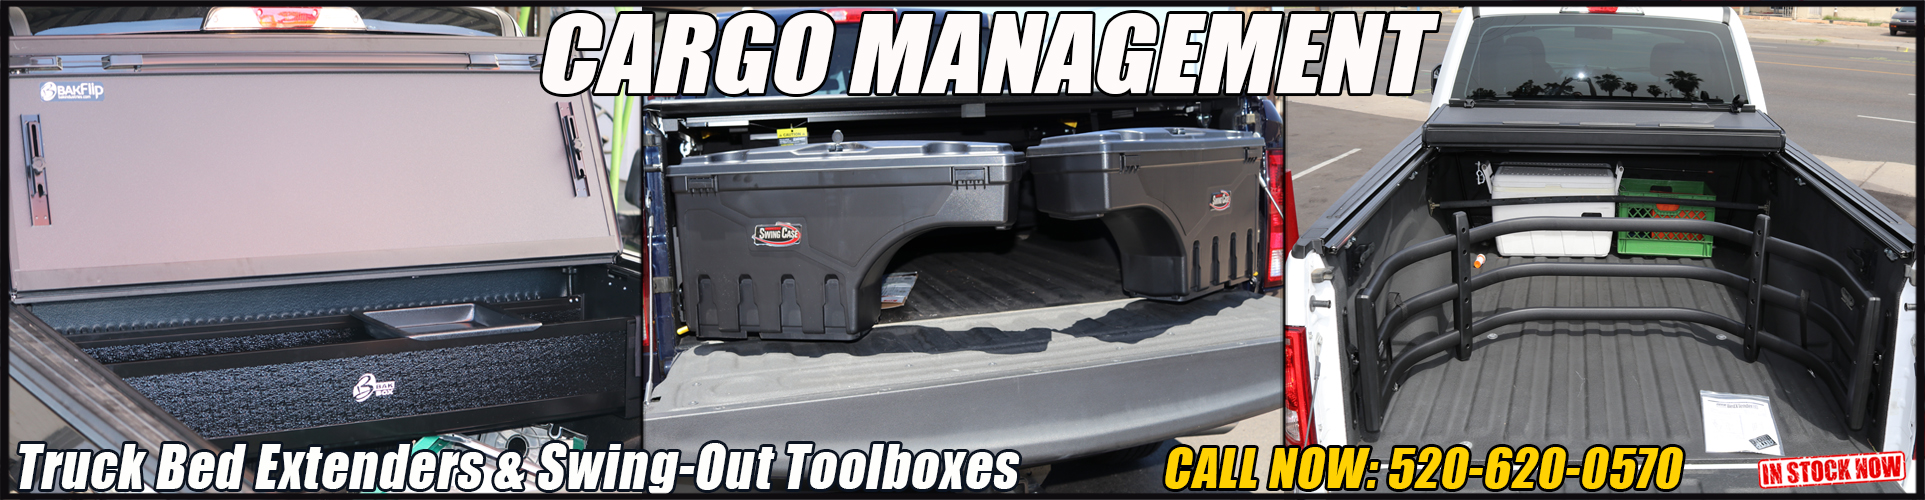 pickup truck bed accessories in tucson arizona